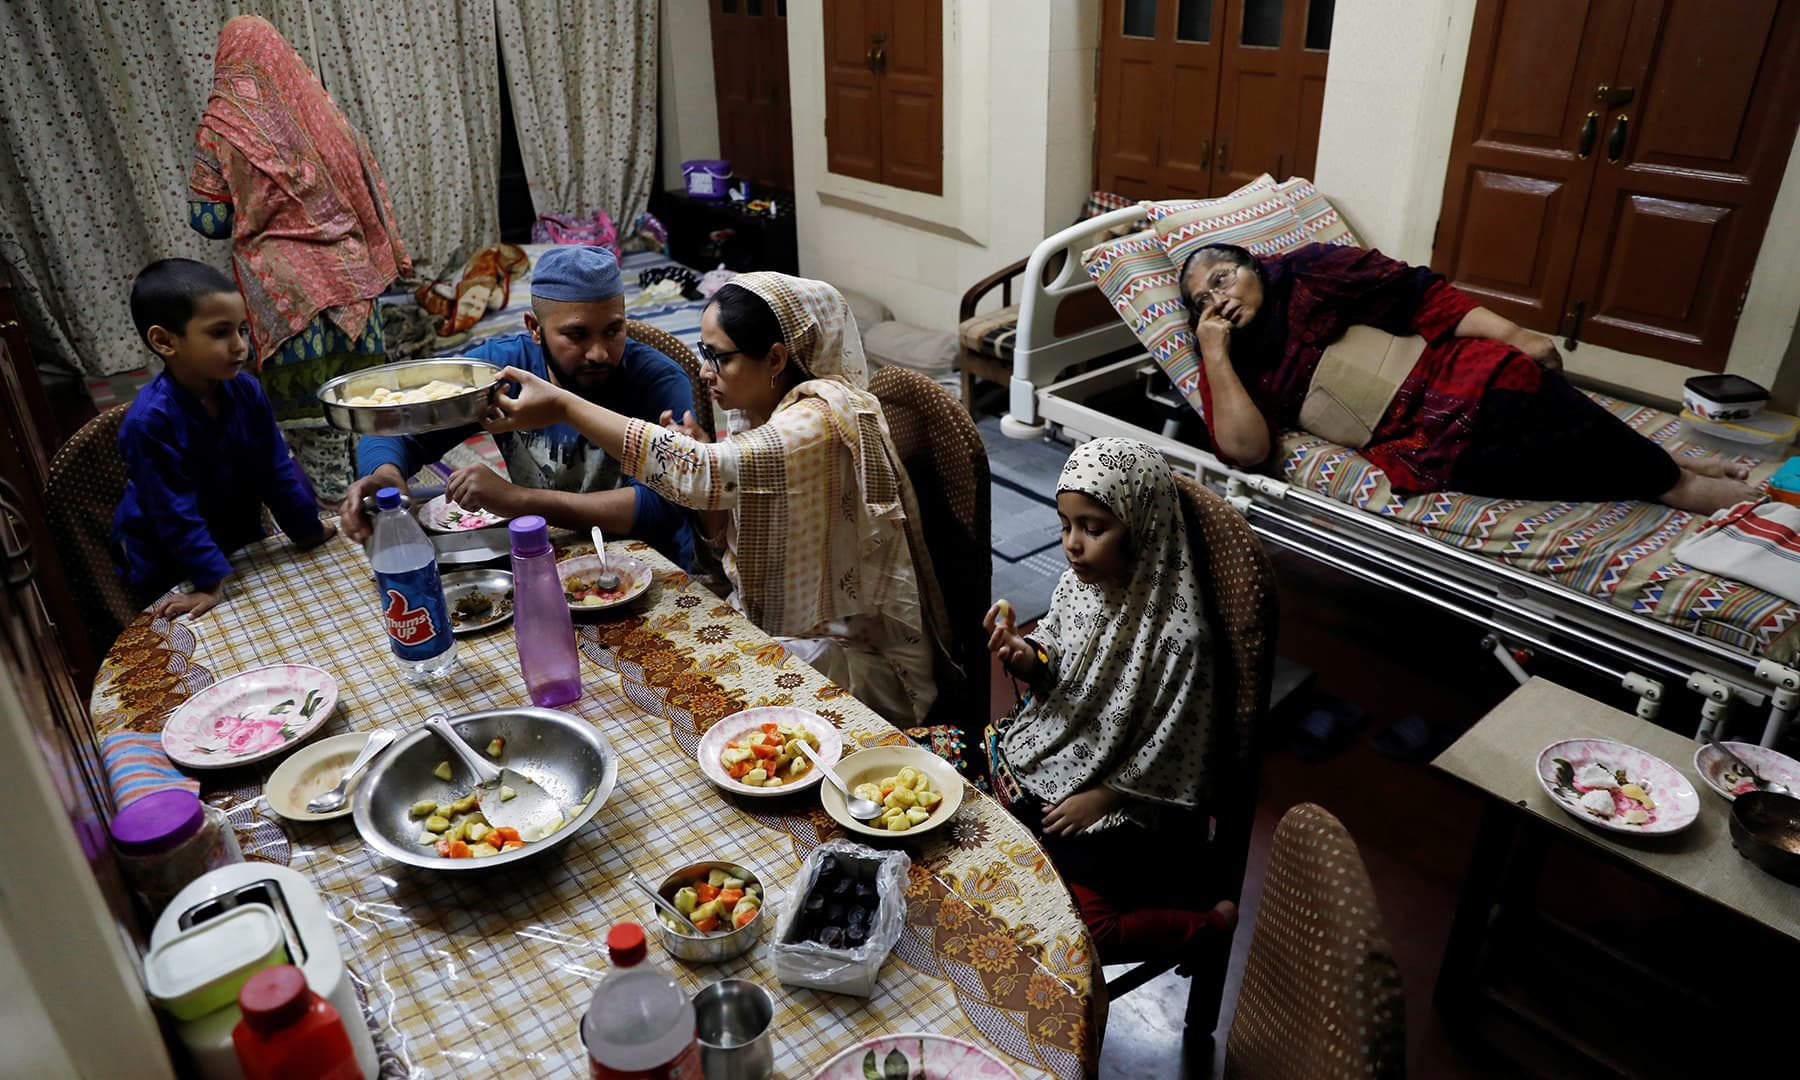 Gohar Sultan (70) looks on as her family eats an Iftar meal at their house in the old quarters of Delhi, India, April 25. — Reuters